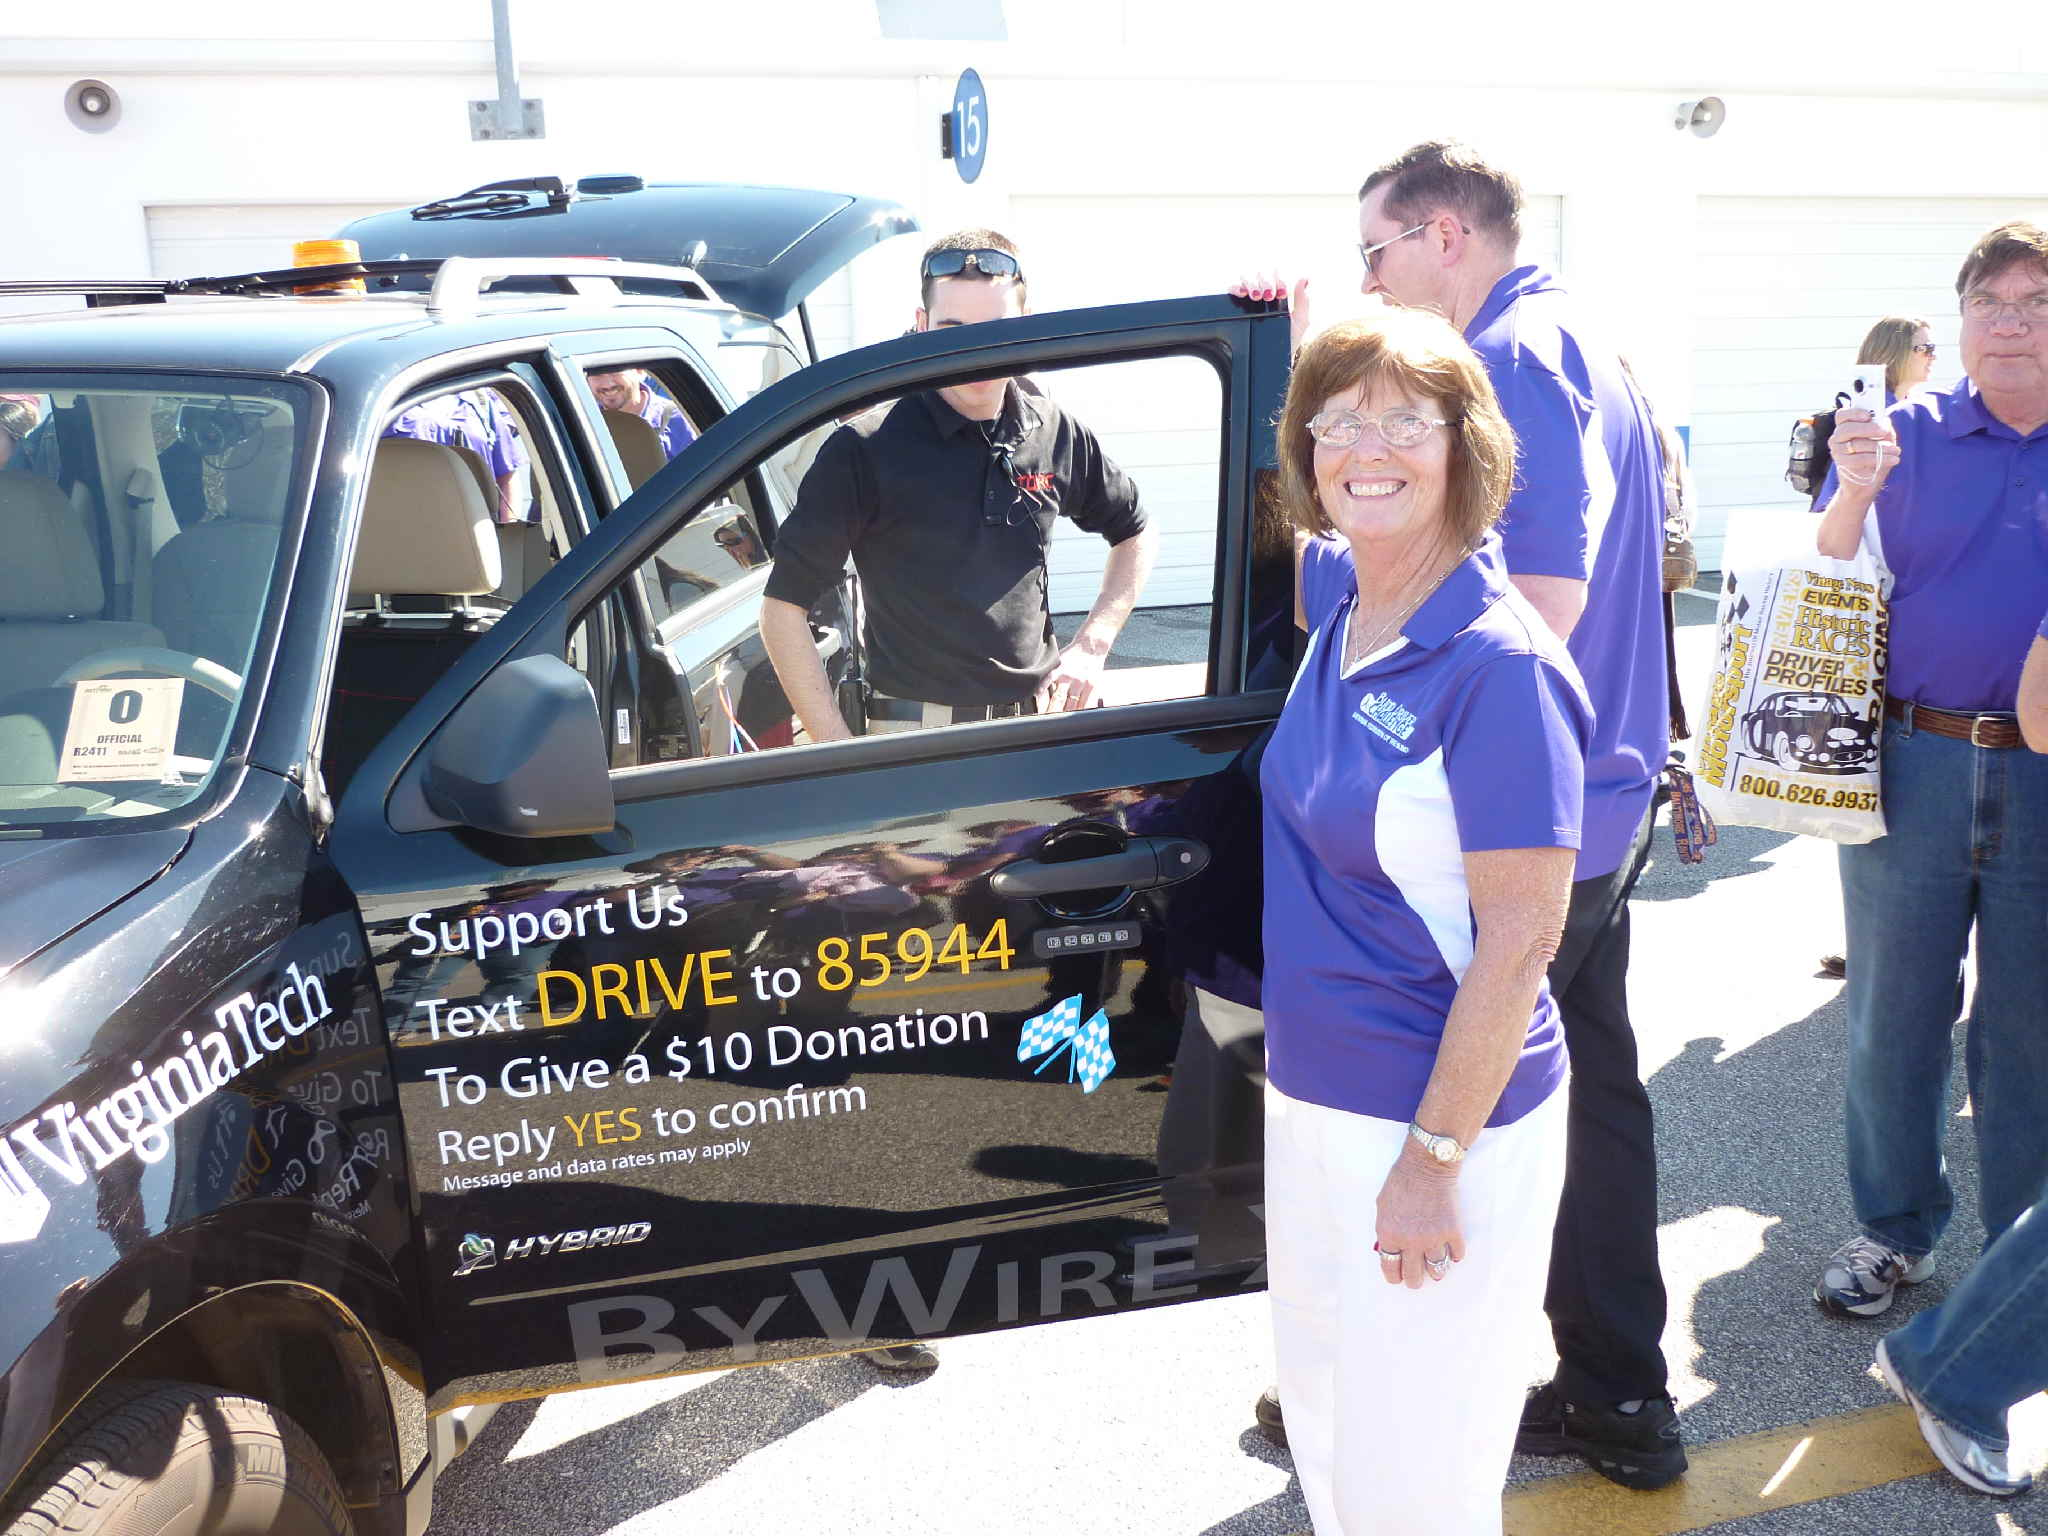 Cathy Jackson holding the door of an SUV challenge vehicle